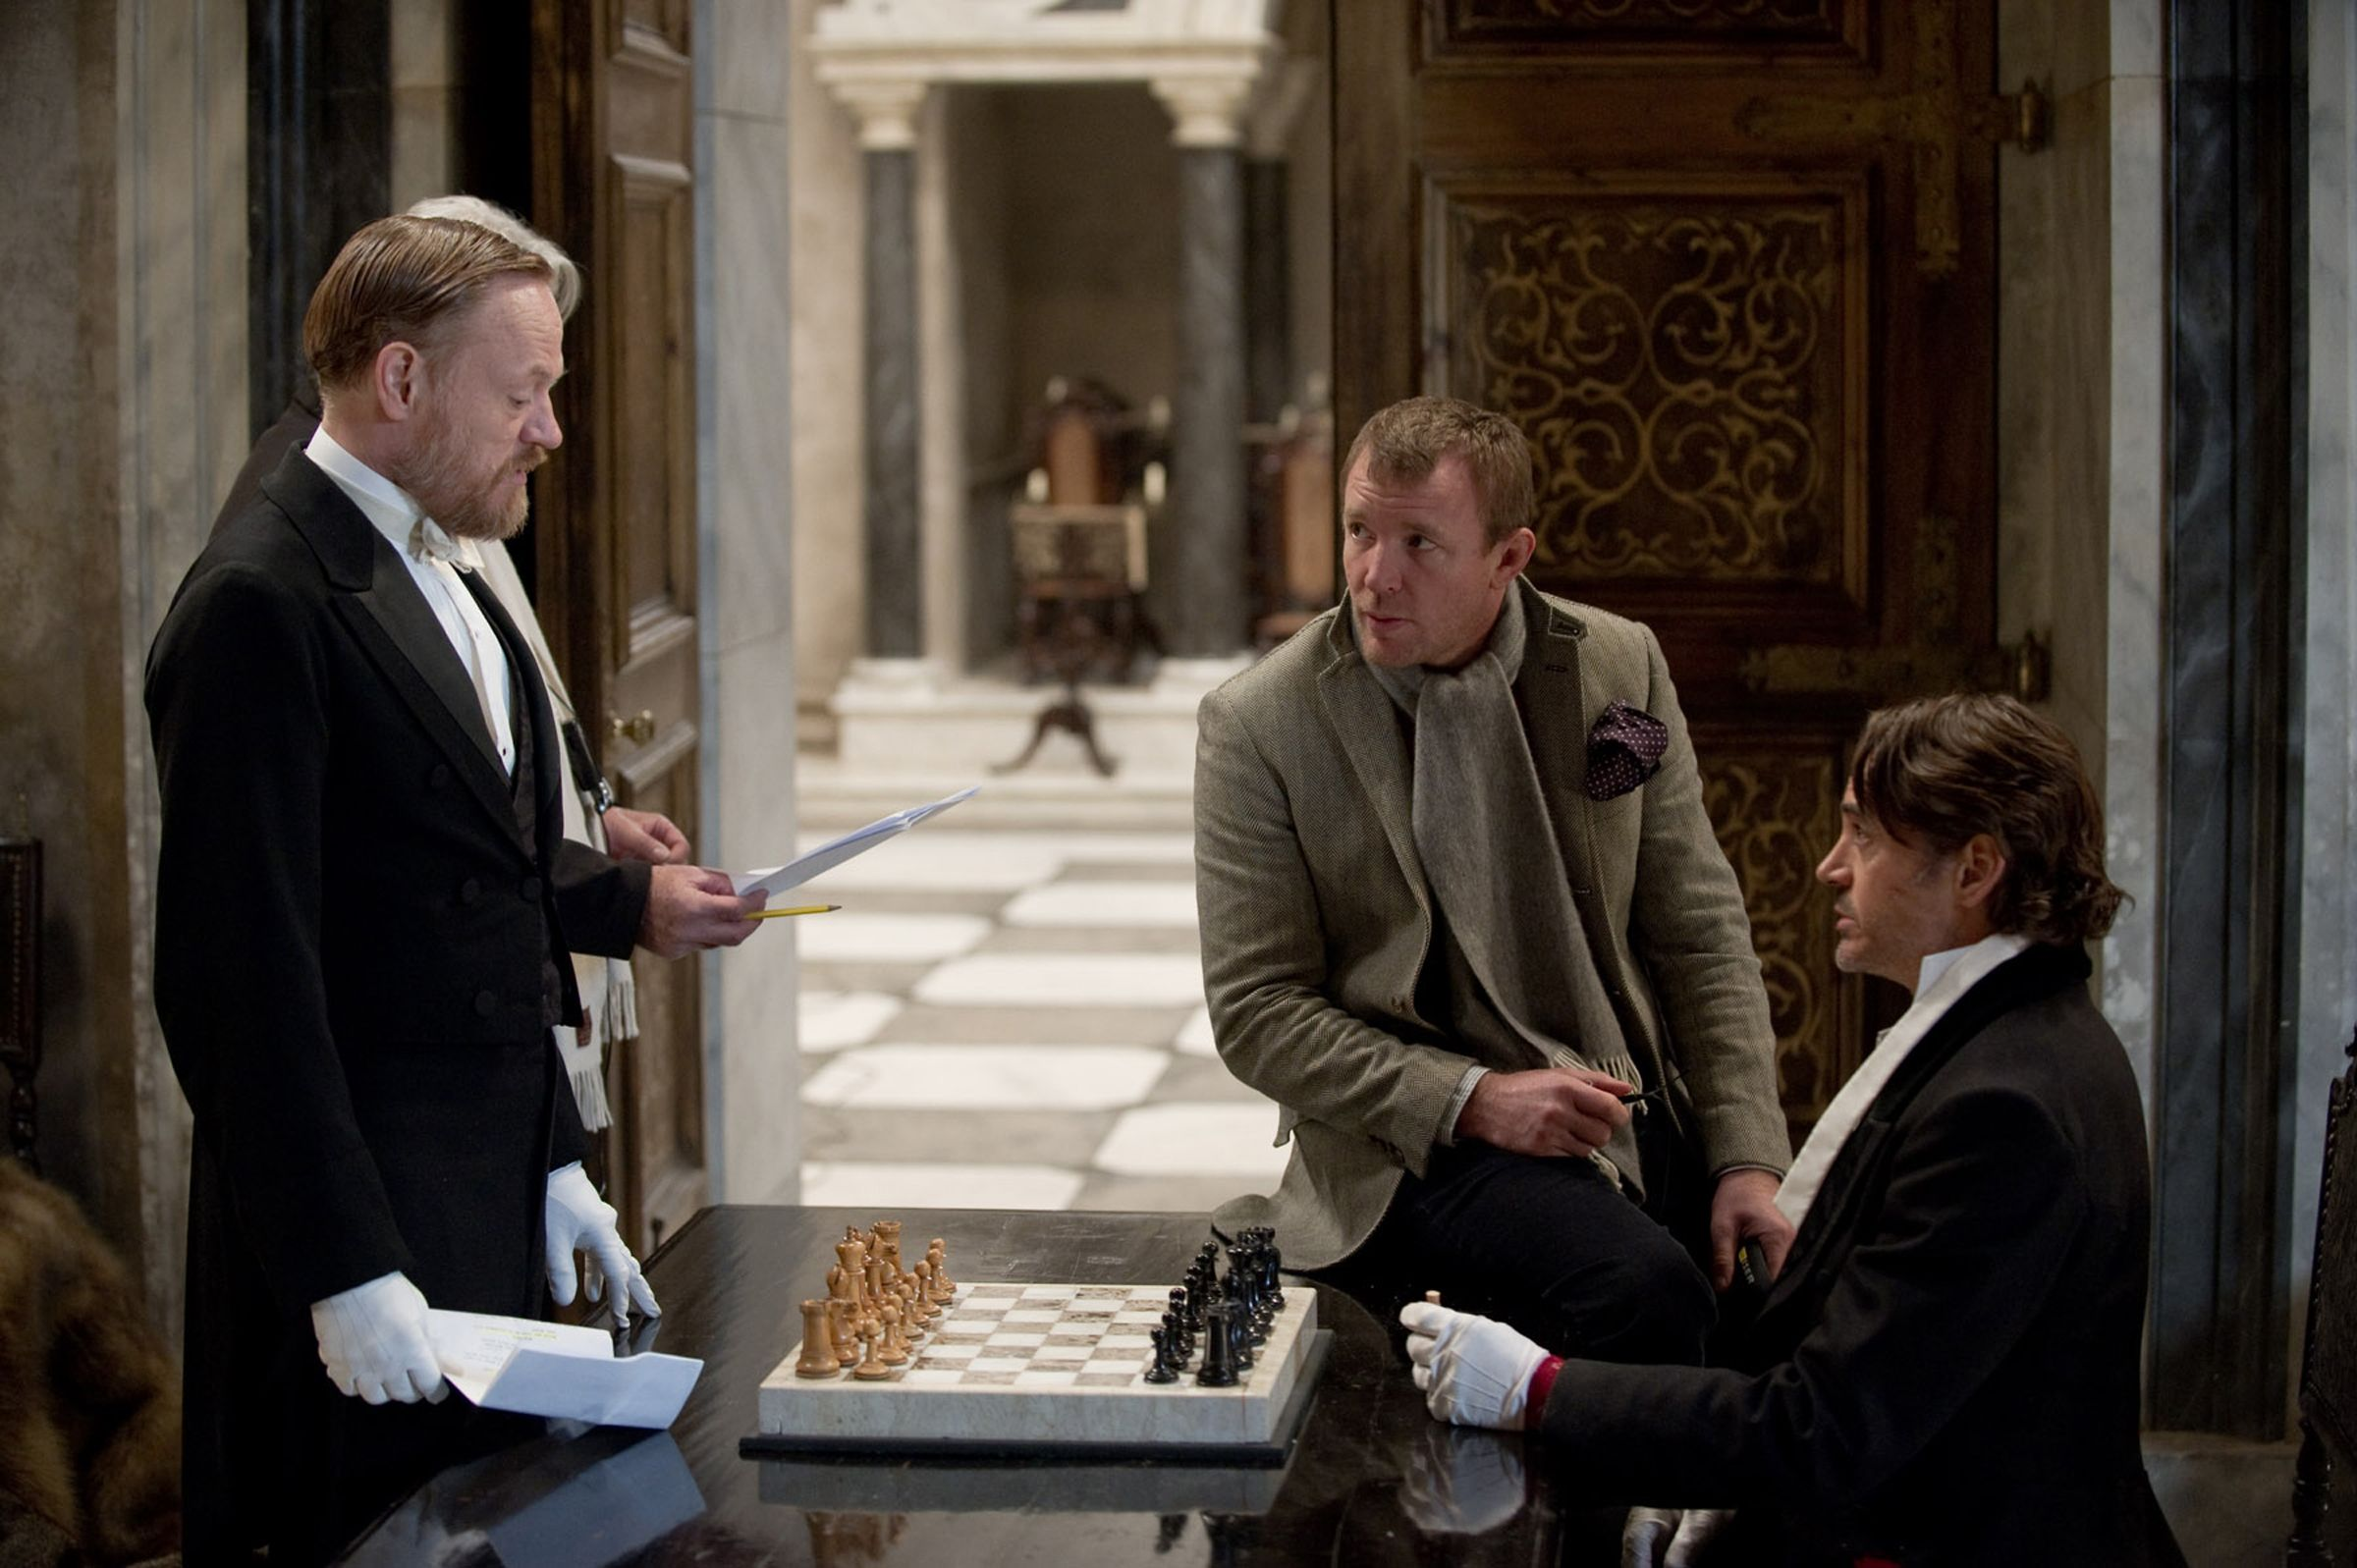 Jared Harris (Moriarty), director Guy Ritchie and Robert